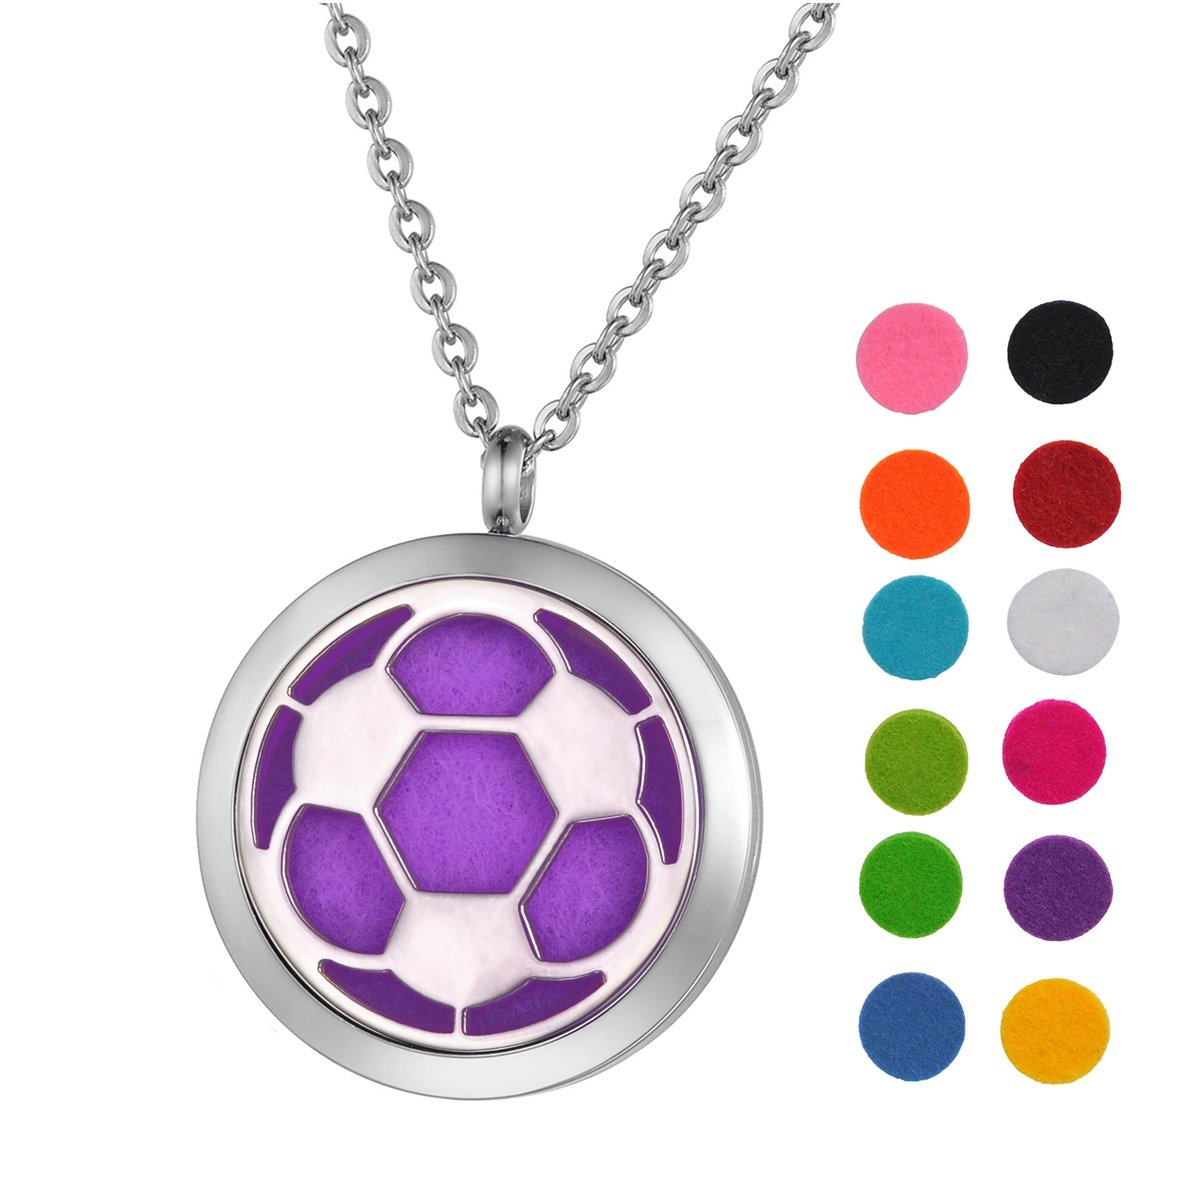 Aromatherapy Essential Oil Diffuser Necklace Basketball Locket Pendant with 24 Chain 12 Refill Pads Silver Tone Supreme glory SGto-B264601